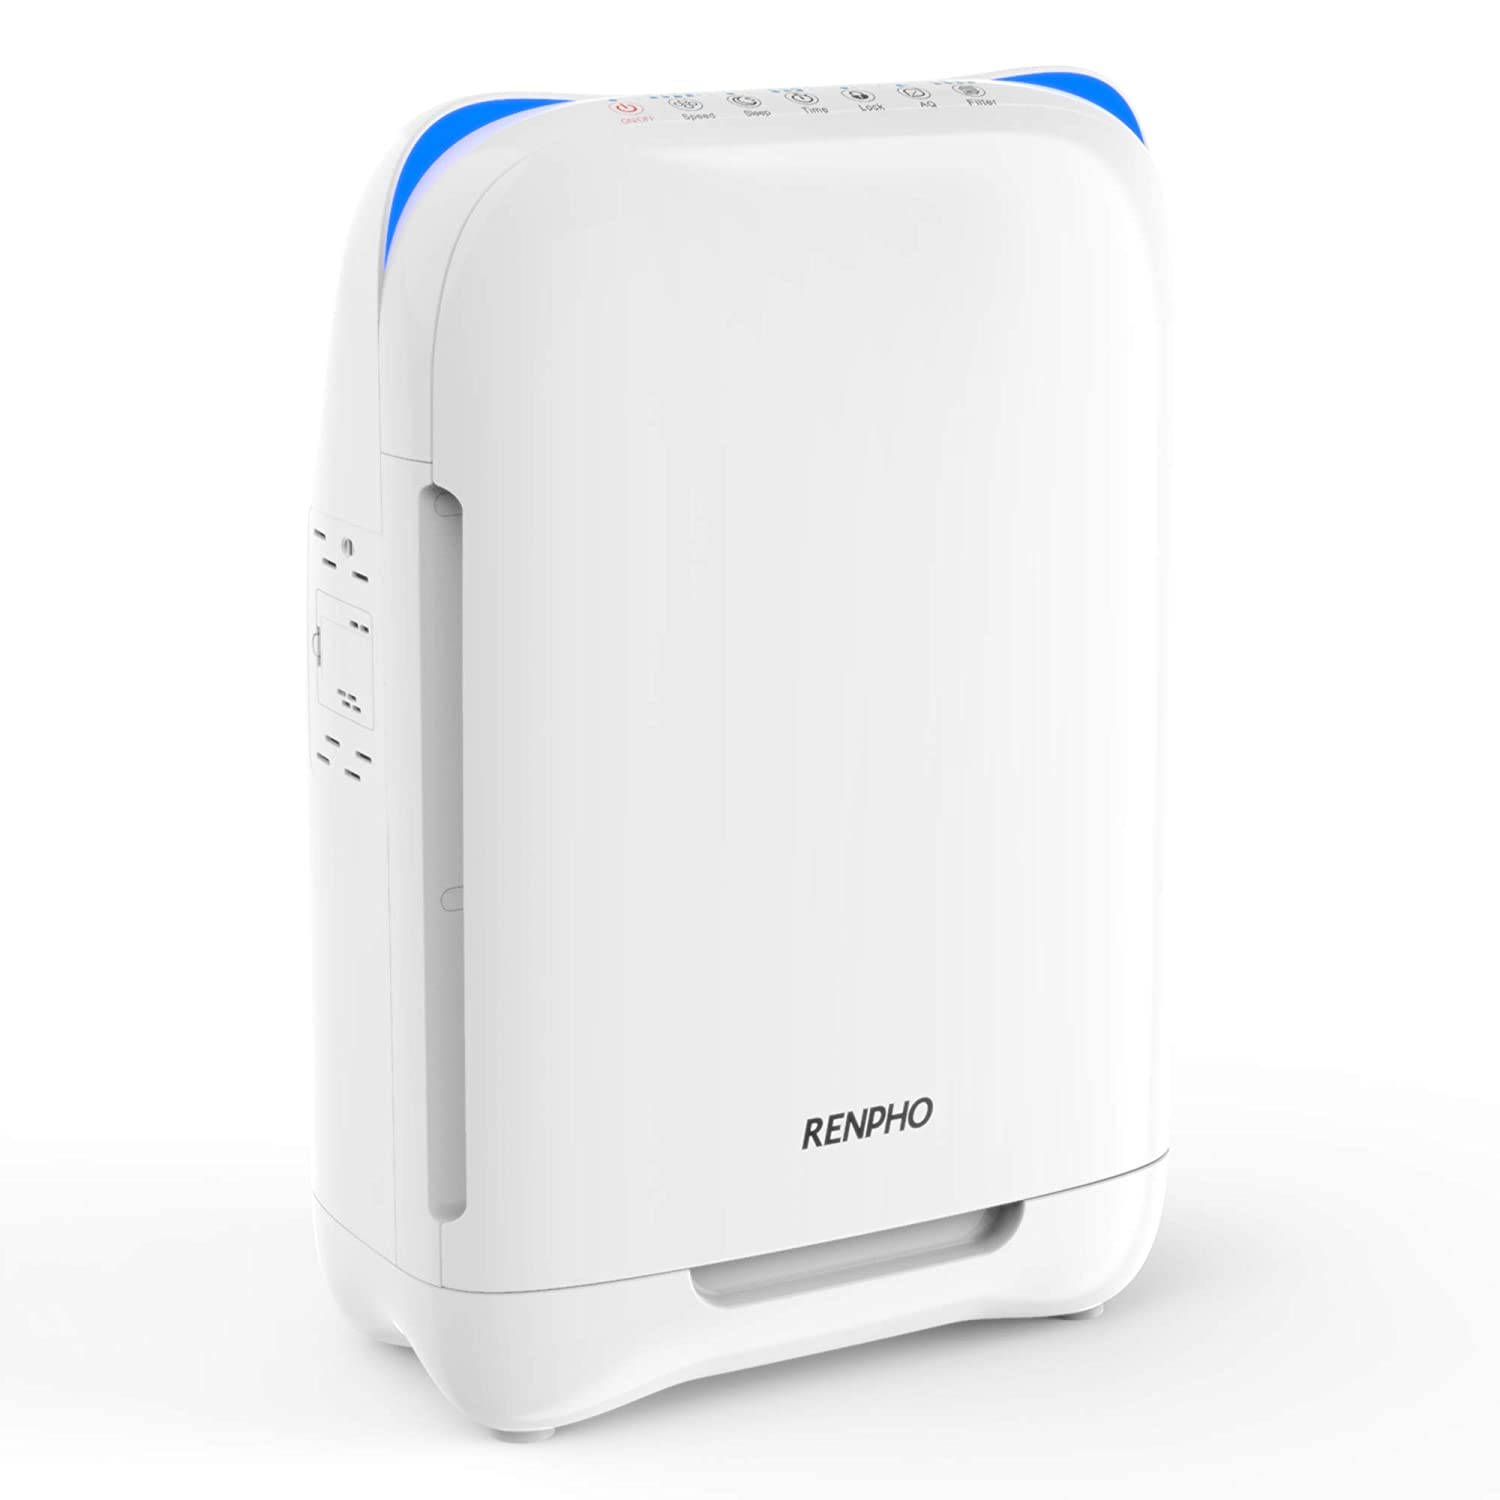 RENPHO Air Purifier for Home Large Room with HEPA Filter, Air Cleaner for Allergies and Pets, Air Purifiers for Bedroom, Eliminates Allergens,Smoke,Odors,Mold,Dust,Germs,Pet Dander,RP-AP001